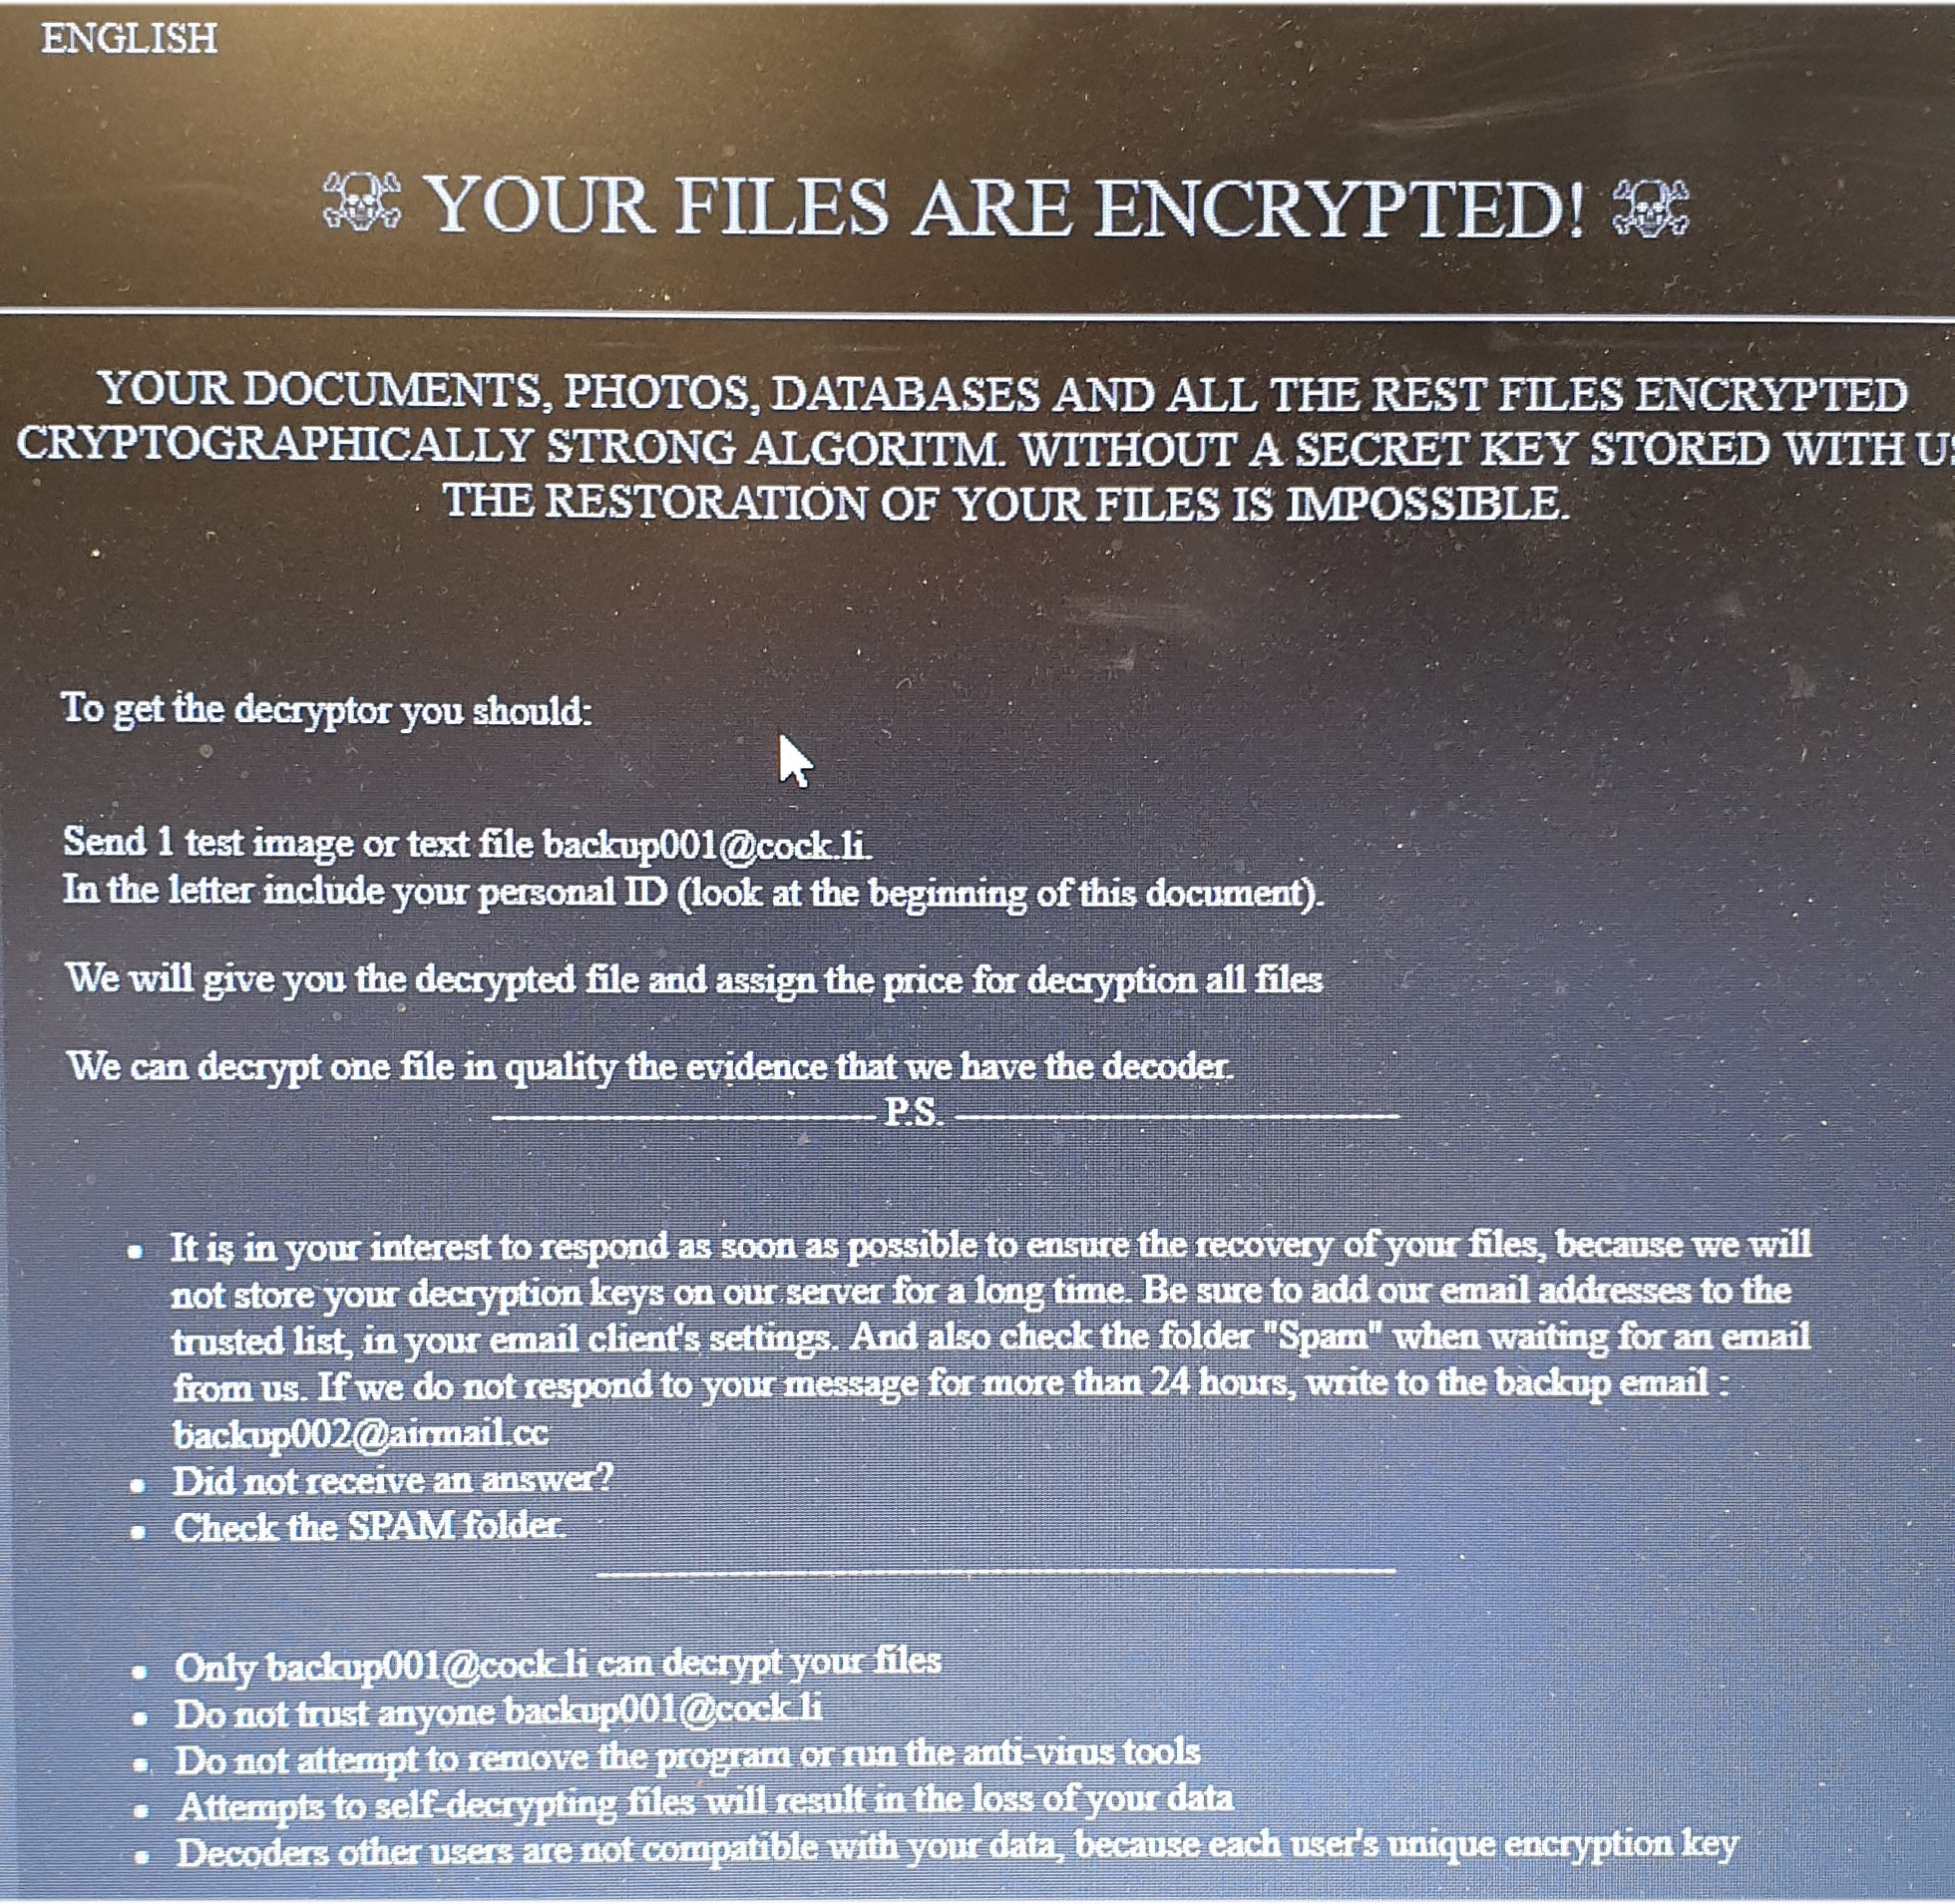 Hit by ransomware - can anyone help identify the strain from